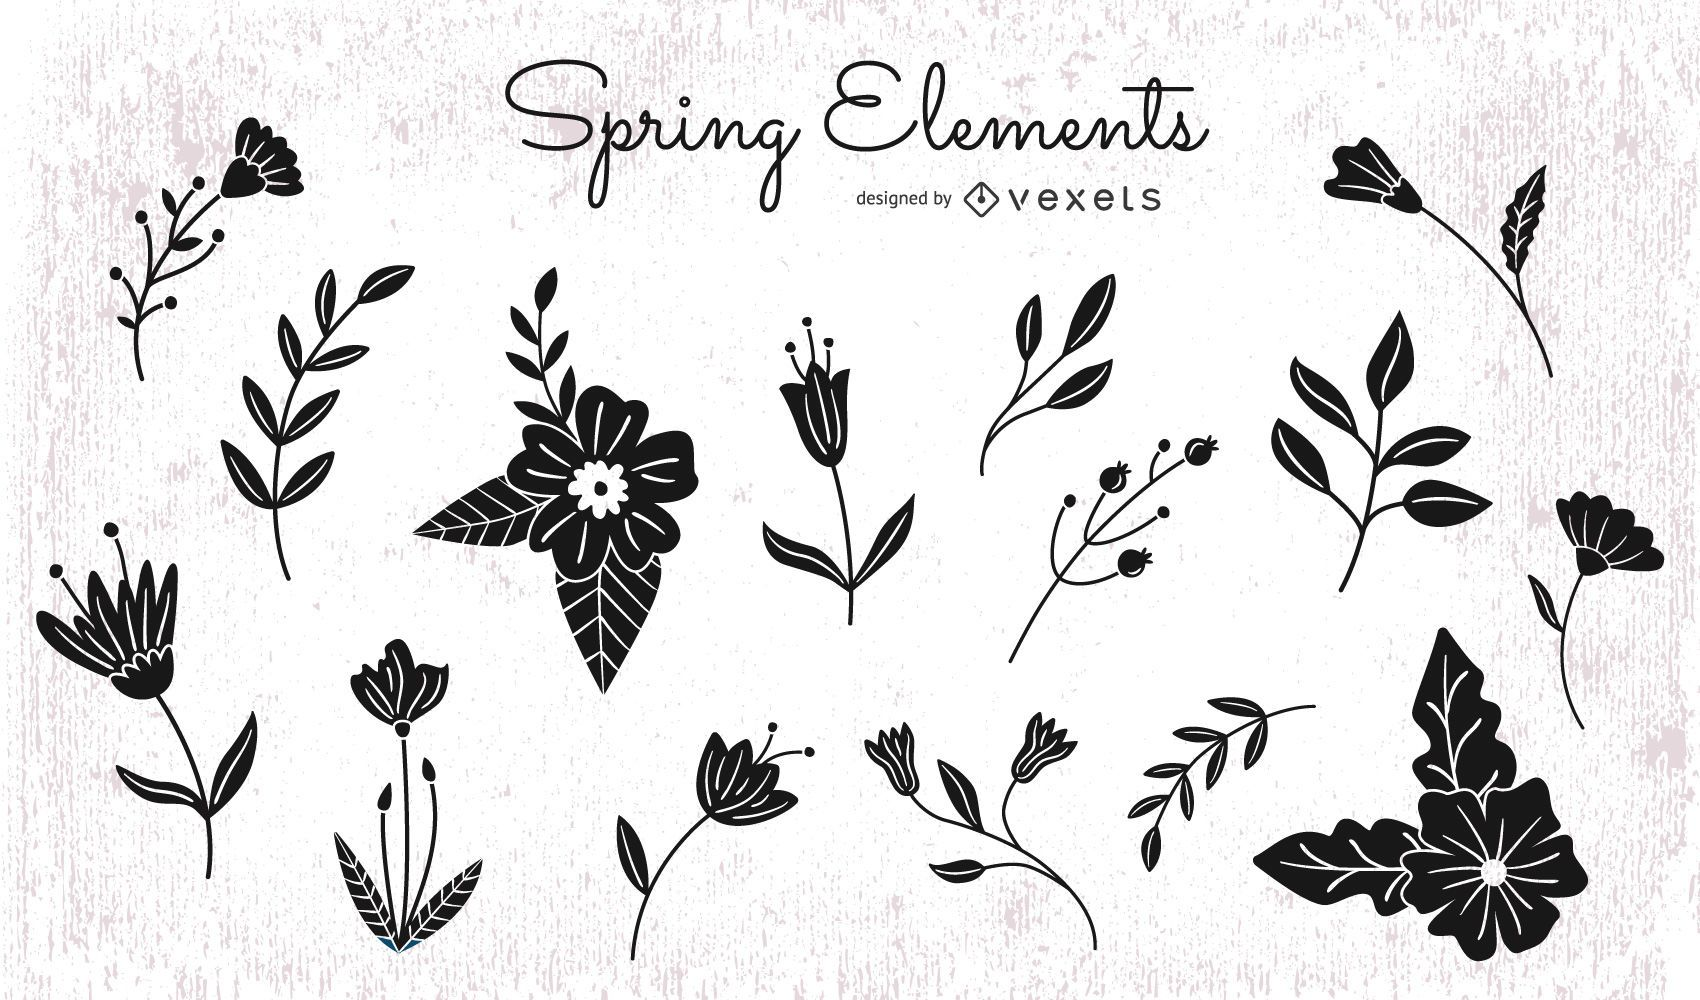 Floral Elements Silhouette Pack